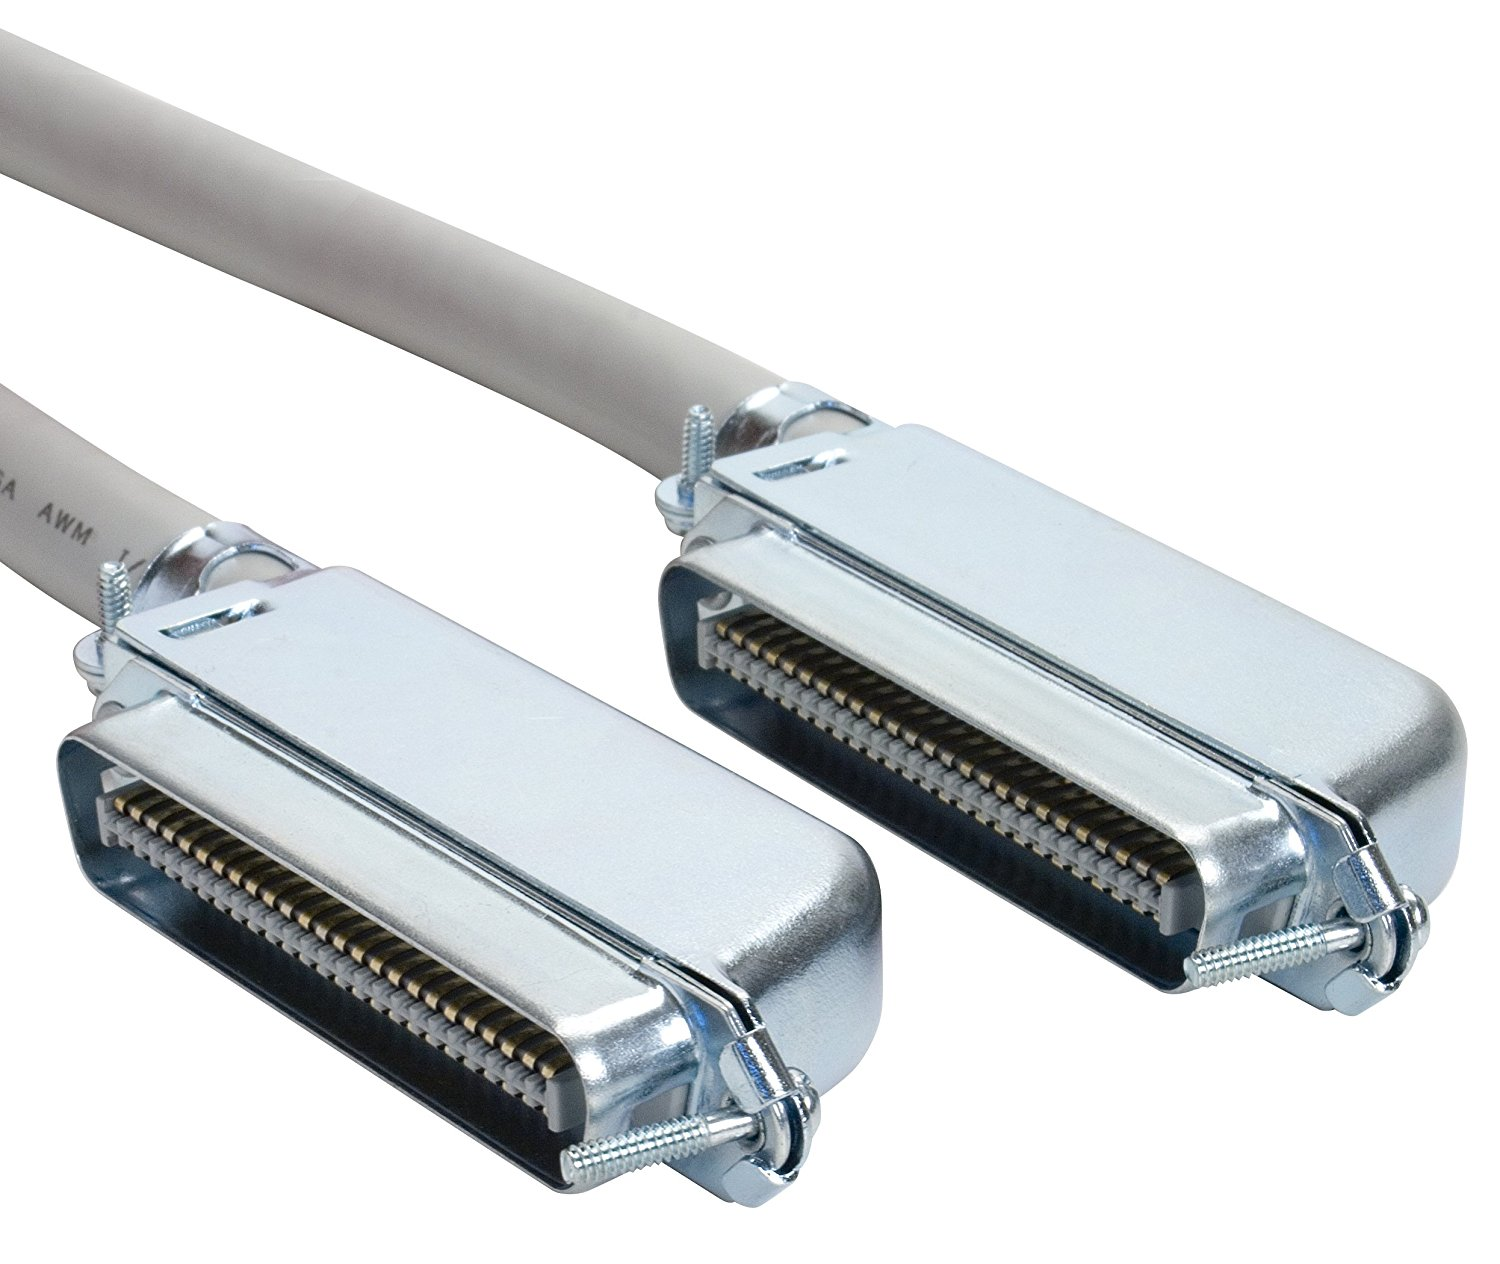 Cheap Amphenol Hdmi Find Deals On Line At Alibabacom Rj21 Connector Wiring Diagram Get Quotations Mp 5t90mmunna 010 Cat3 25 Pair Telco Cable 90 Degree